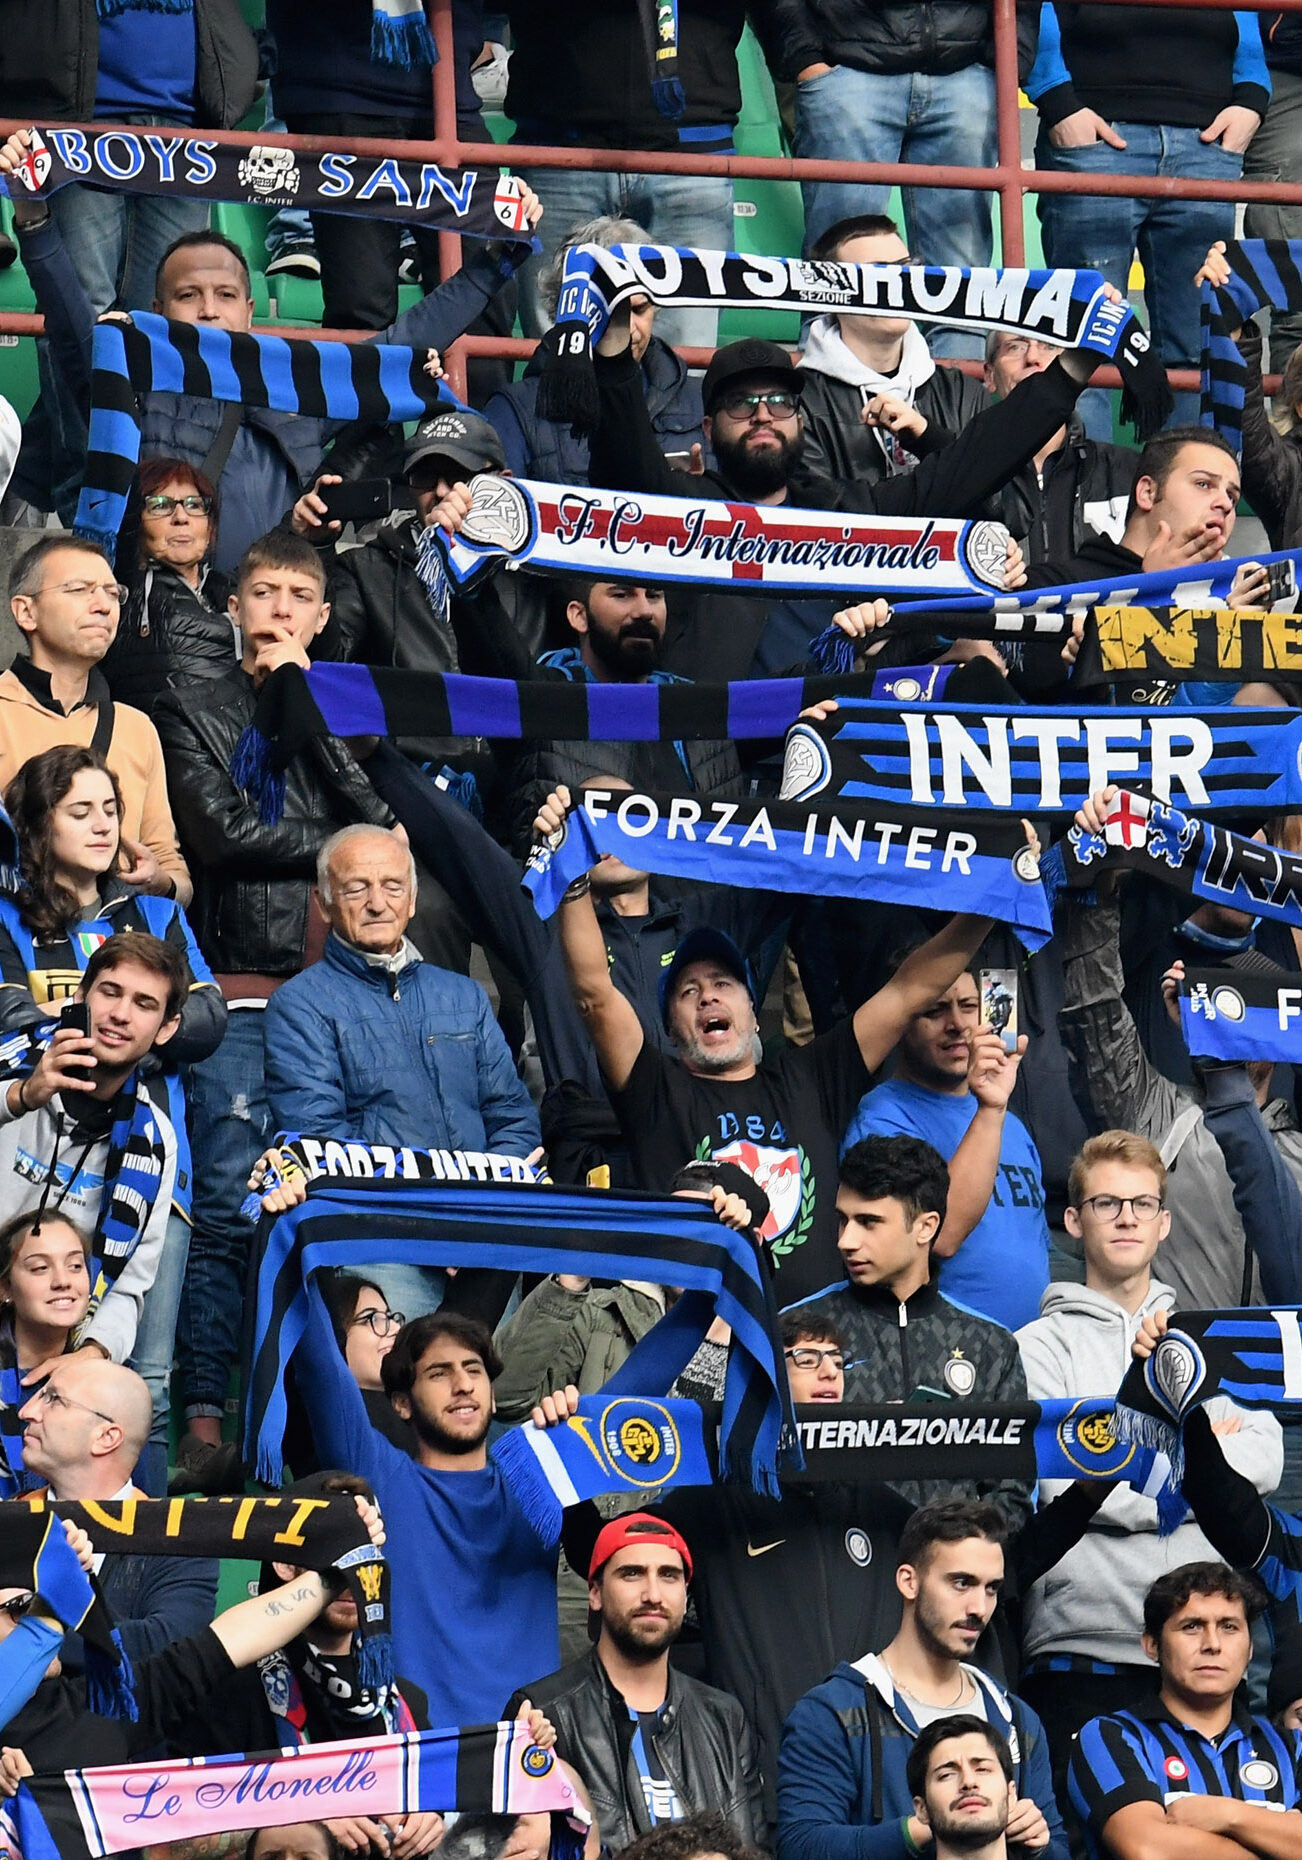 MILAN, ITALY - NOVEMBER 03:  FC Internazionale fans show their support during the Serie A match between FC Internazionale and Genoa CFC at Stadio Giuseppe Meazza on November 3, 2018 in Milan, Italy.  (Photo by Claudio Villa - Inter/Inter via Getty Images)